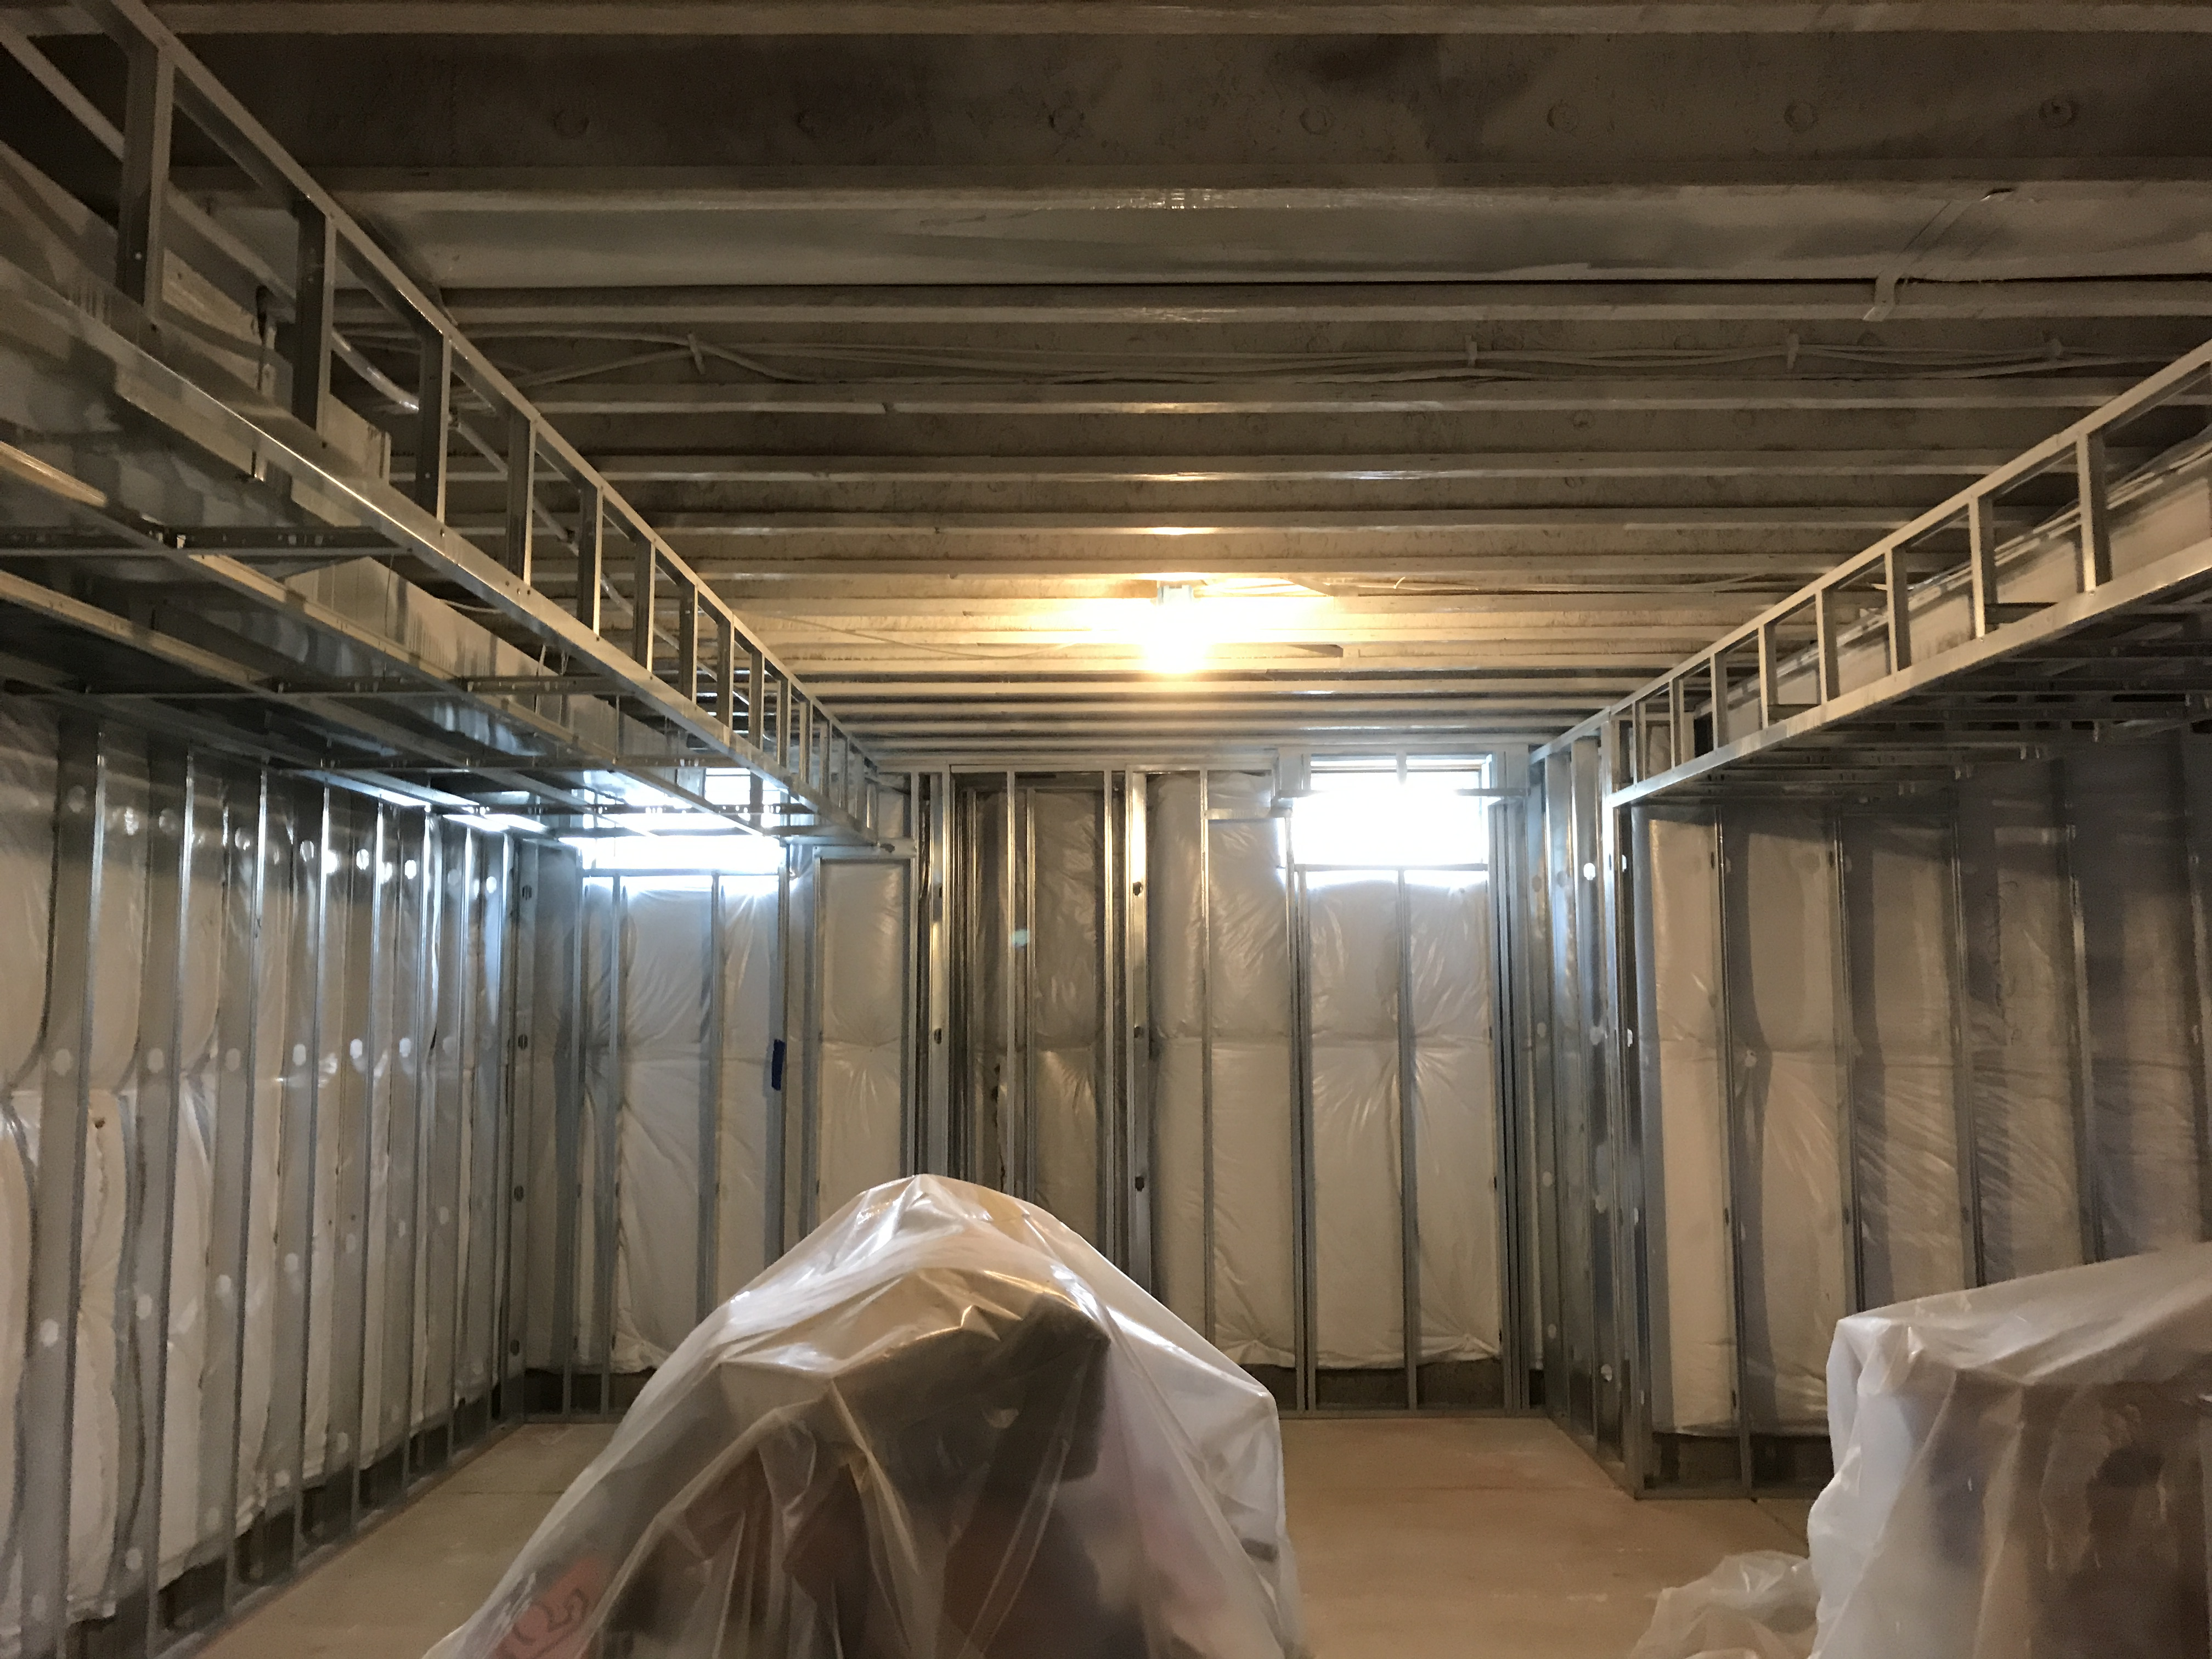 Fungicide application for mold remediation